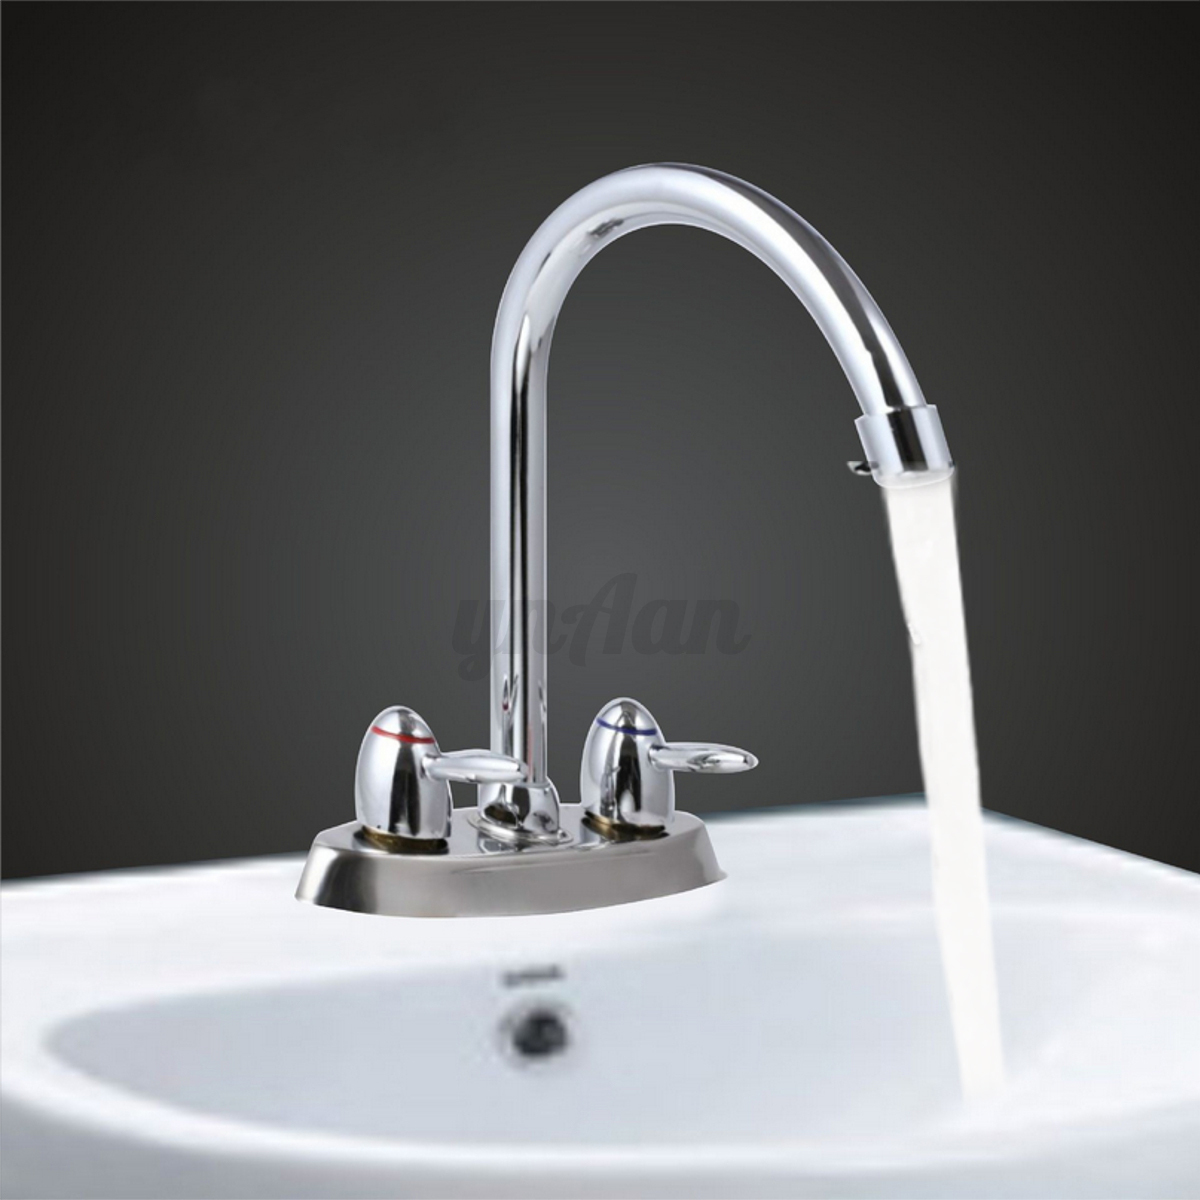 Kitchen Filter Faucet Kitchen Basin Sink Faucet Tap Mixer Spout Reverse Osmosis